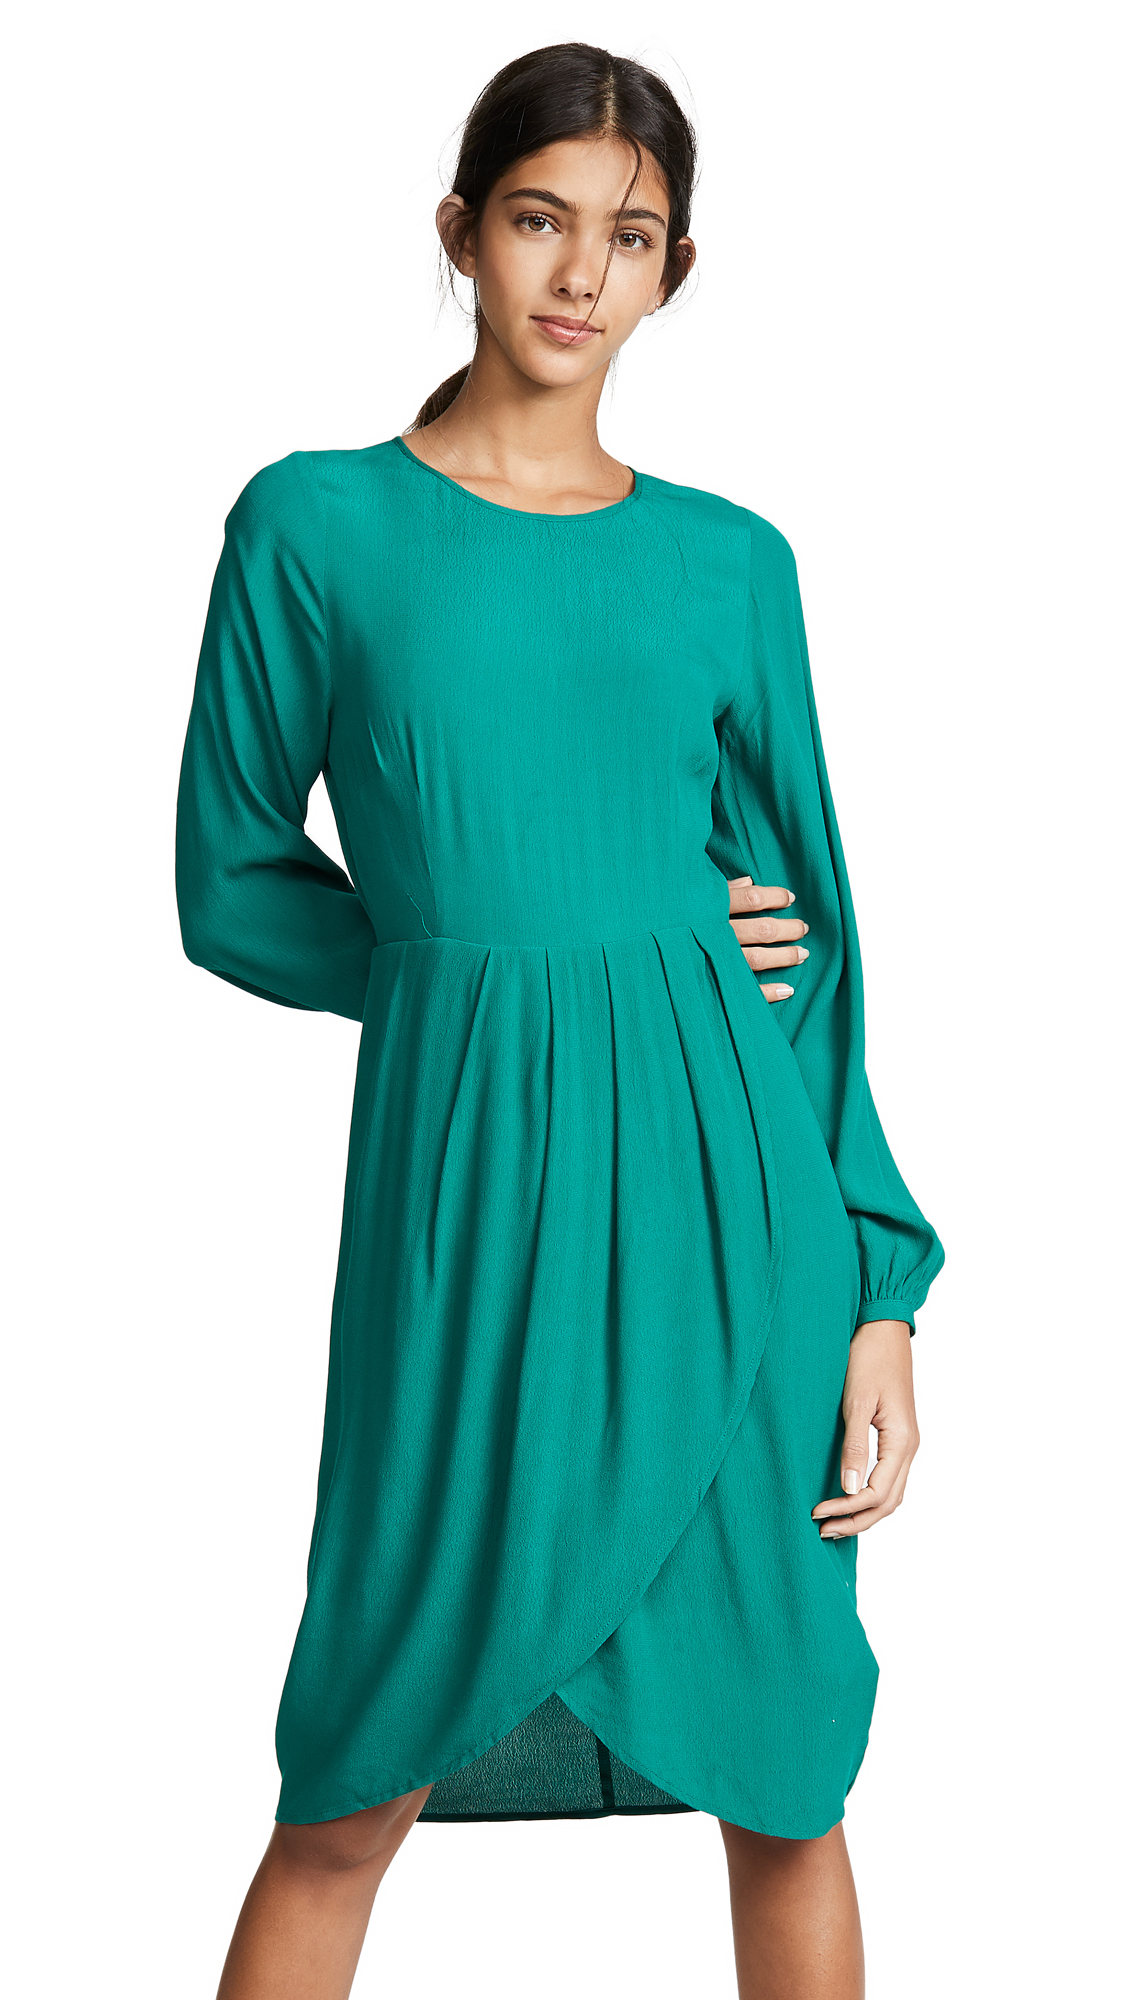 YUMI KIM Dreamer Dress in Jewel Emerald